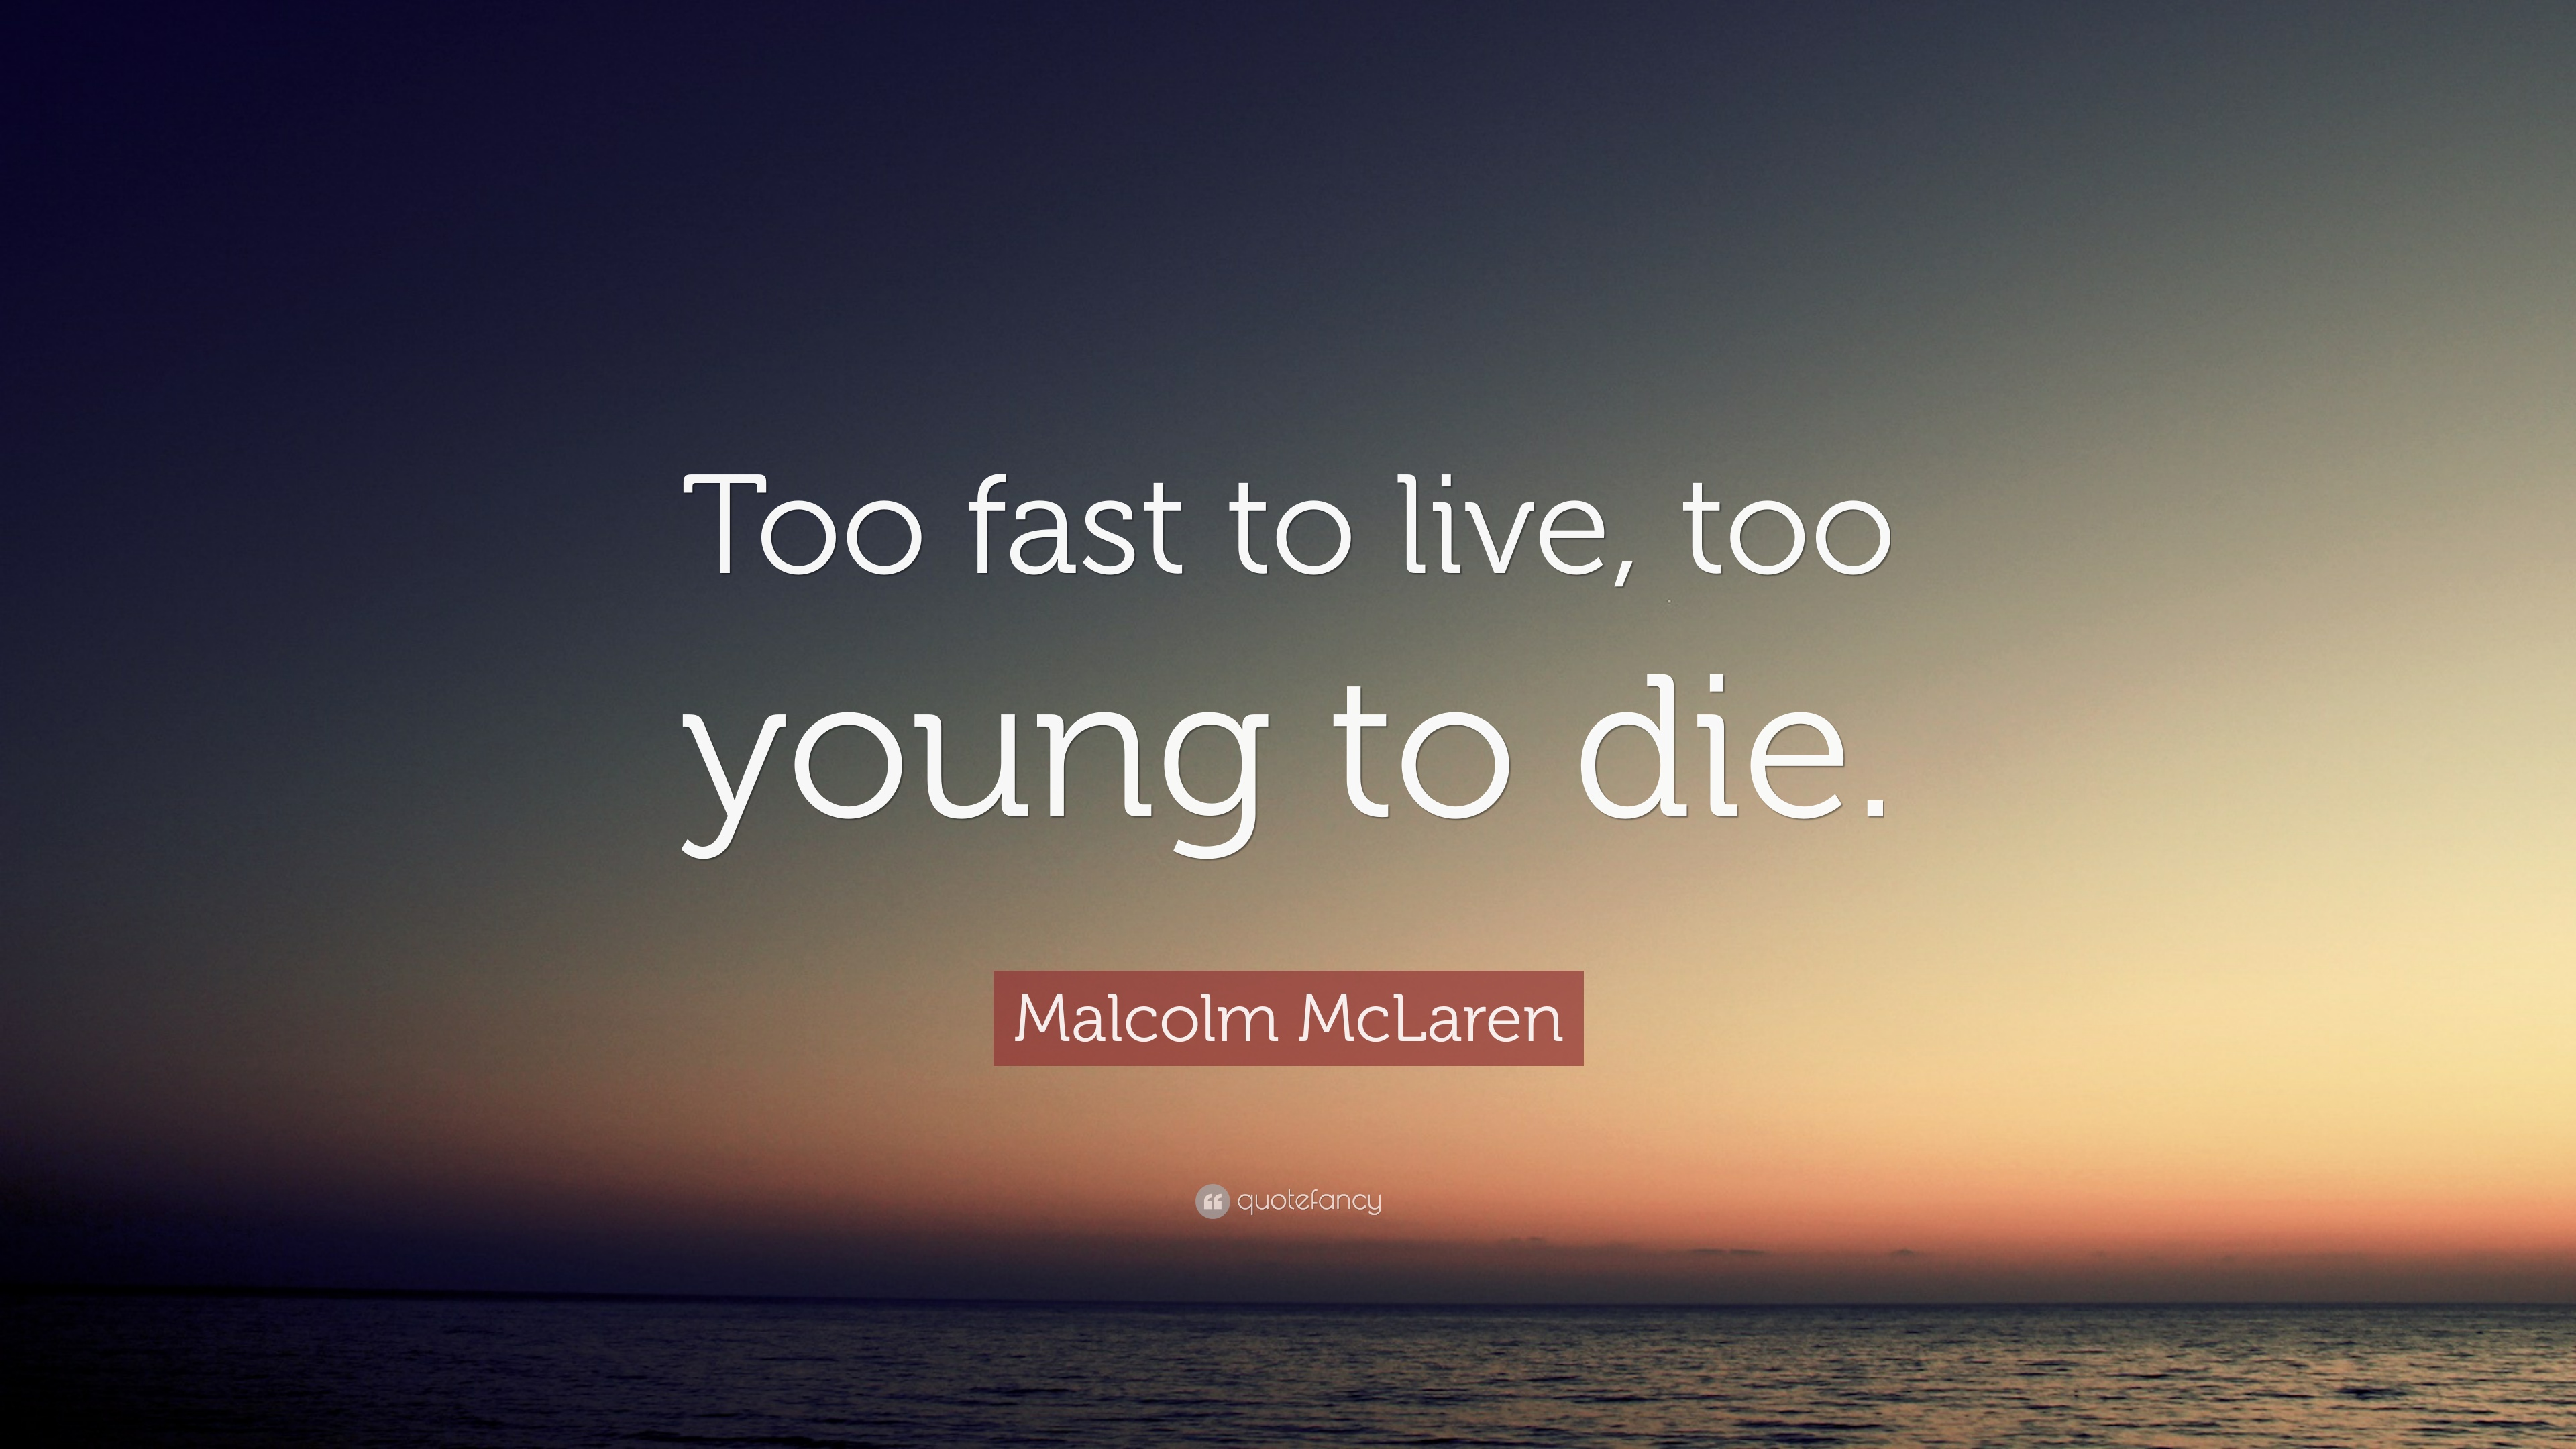 Malcolm Mclaren Quote Too Fast To Live Too Young To Die 12